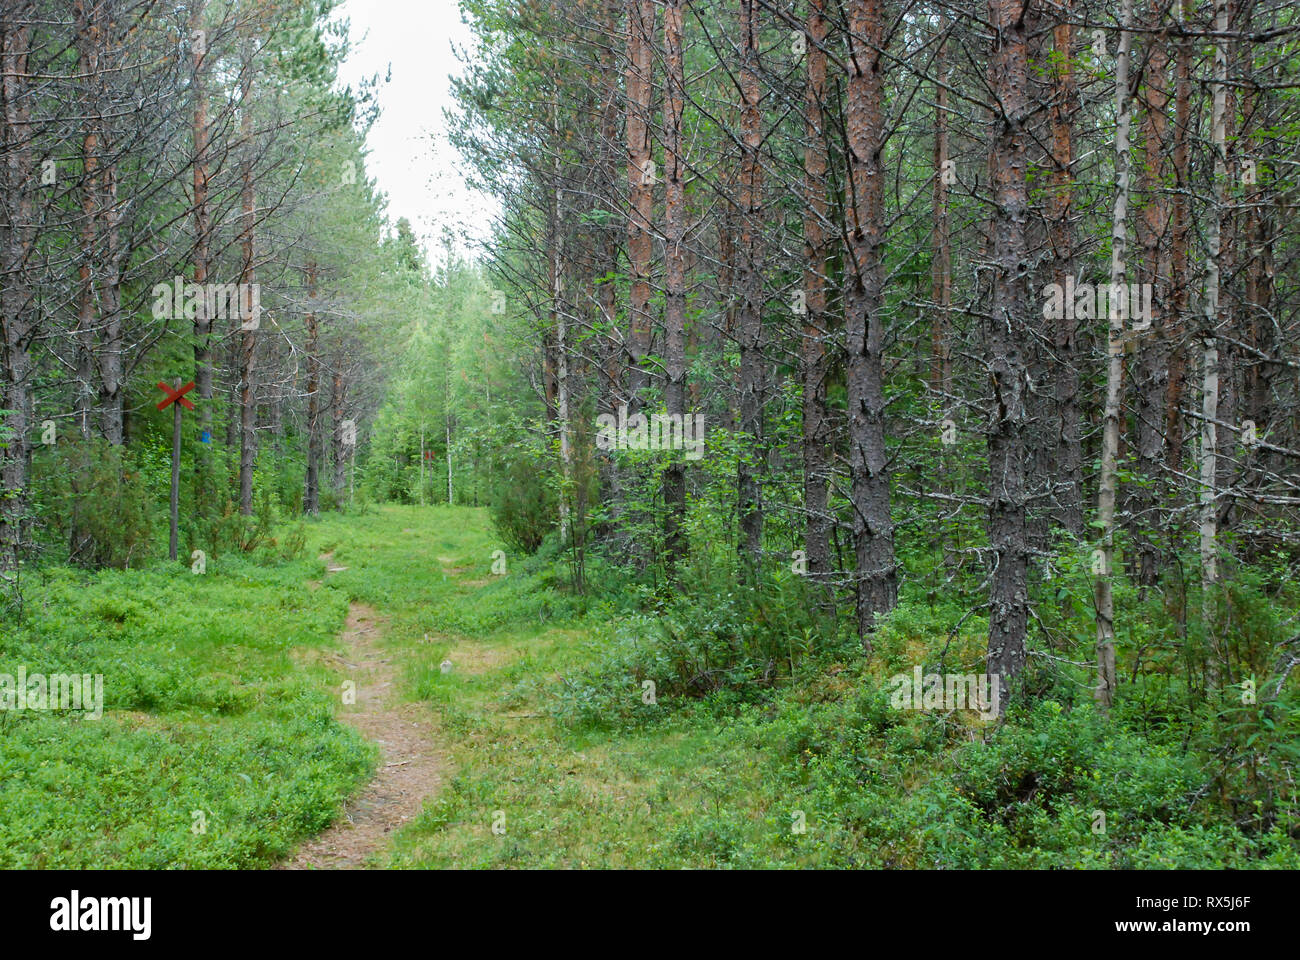 Taiga Forest (boreal forest) biome, natural wild landscape in north eastern Finland, Europe, with coniferous trees including pines and spruces. - Stock Image